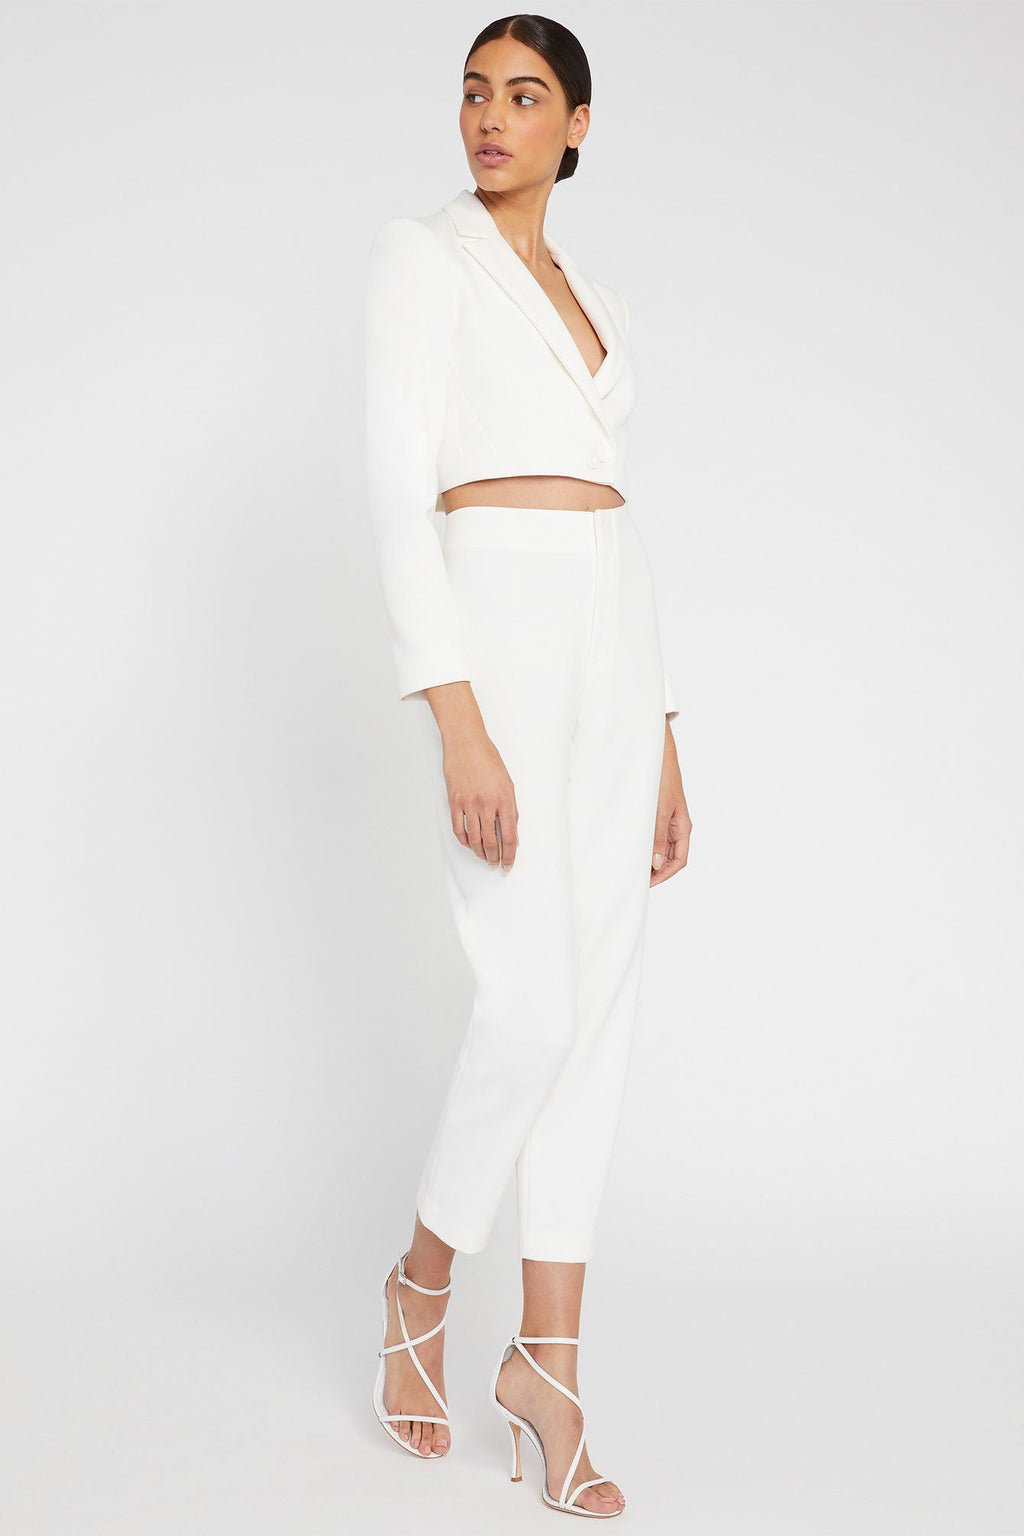 ALICE + OLIVIA | Lorinda Super HW Crop Pant - Off White